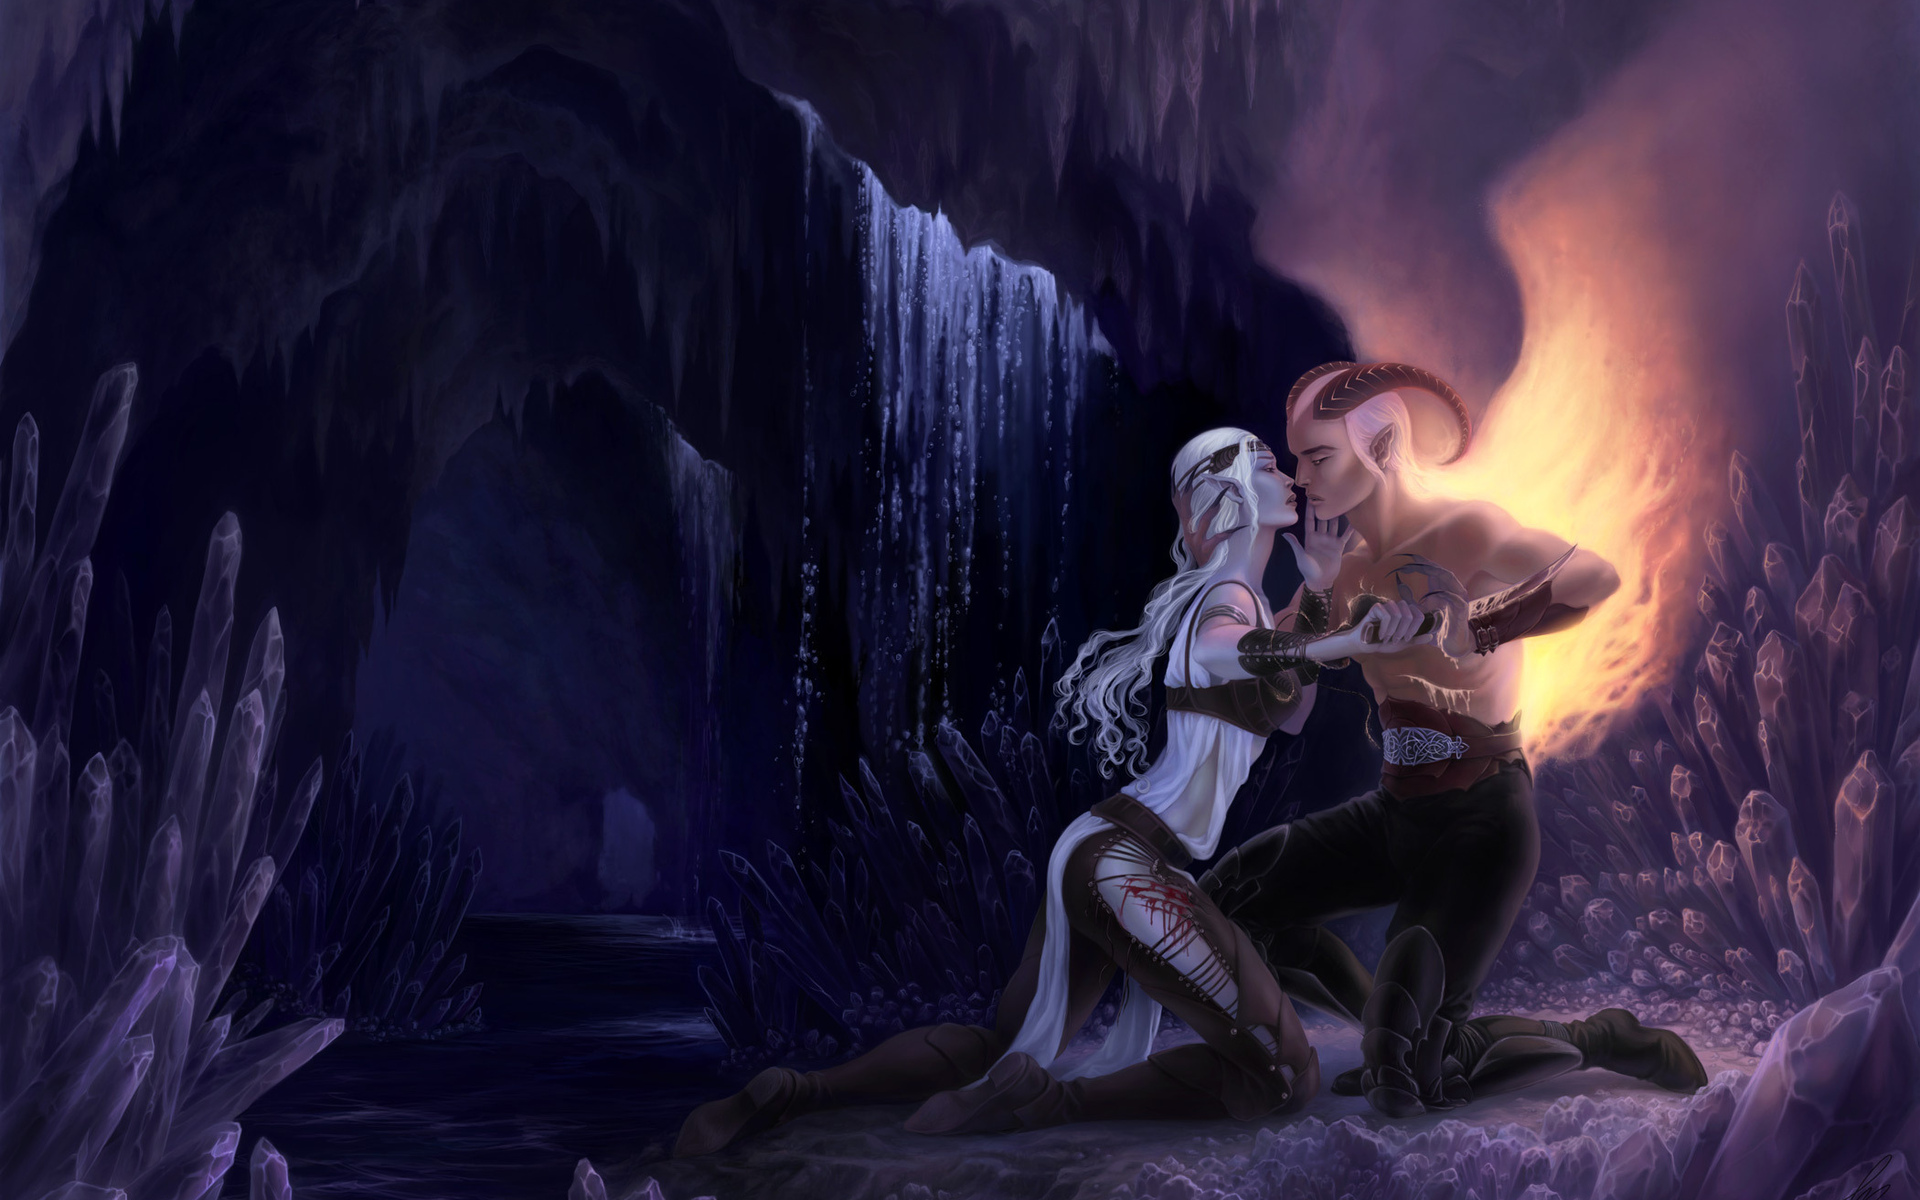 fantasy demon hell caves landscapes waterfall crystal love romance emotion good evil fire flames mountains cliff art rivers women females girls babes blondes legs dark blood sad sorrow elf